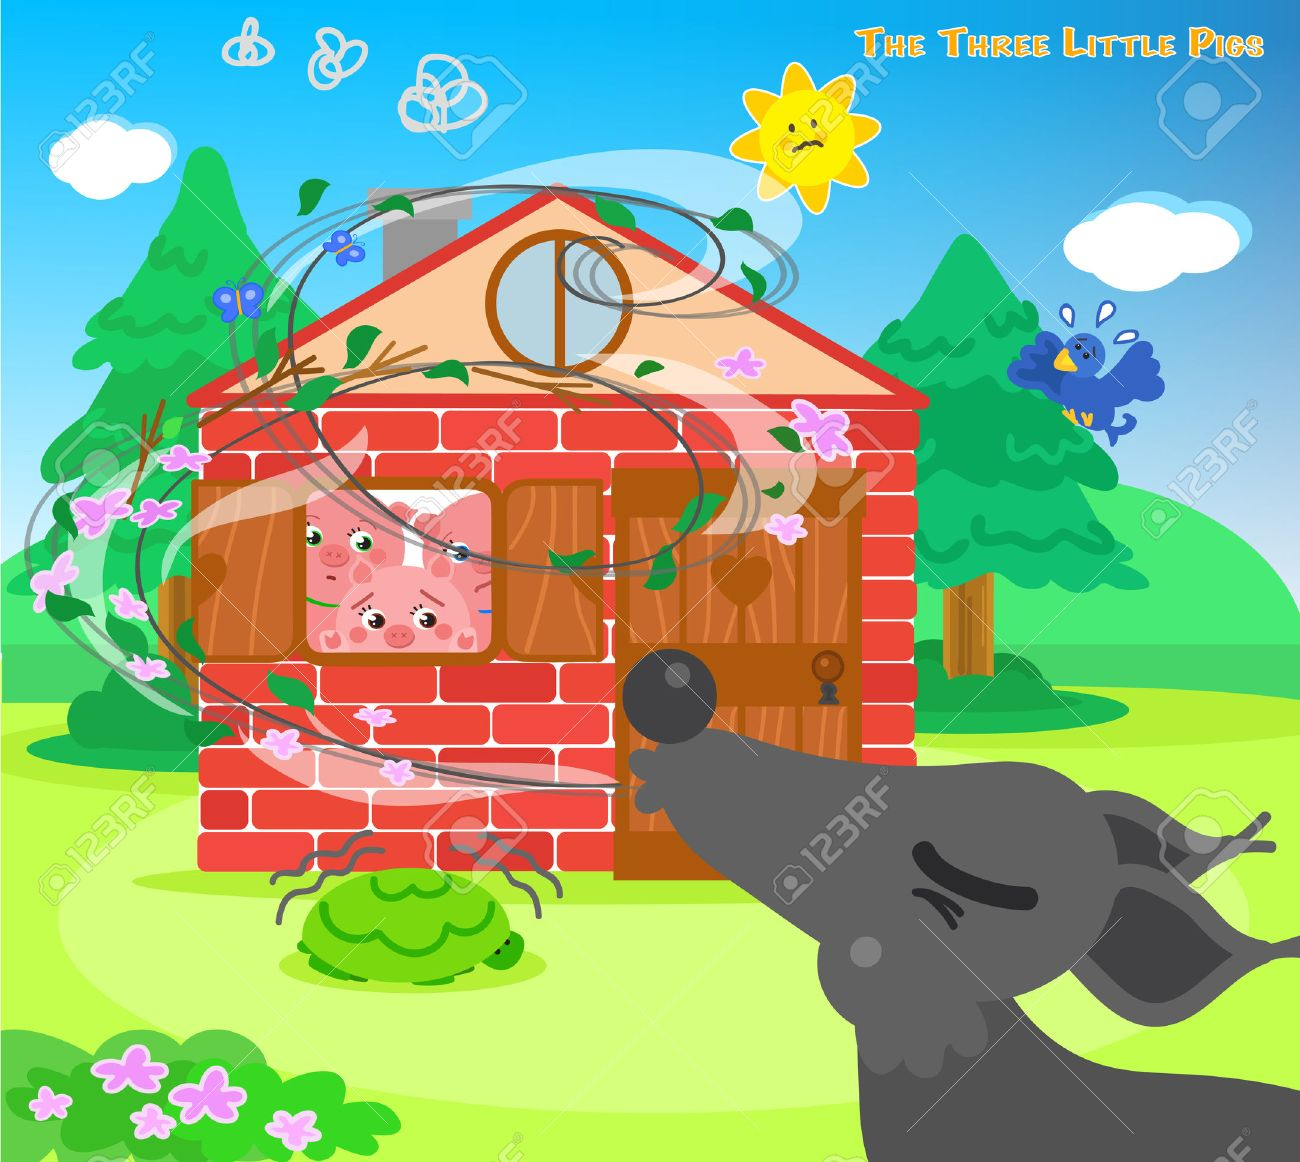 The three scared pigs are hiding in the bricks house while the big bad wolf is blowing - 54420972